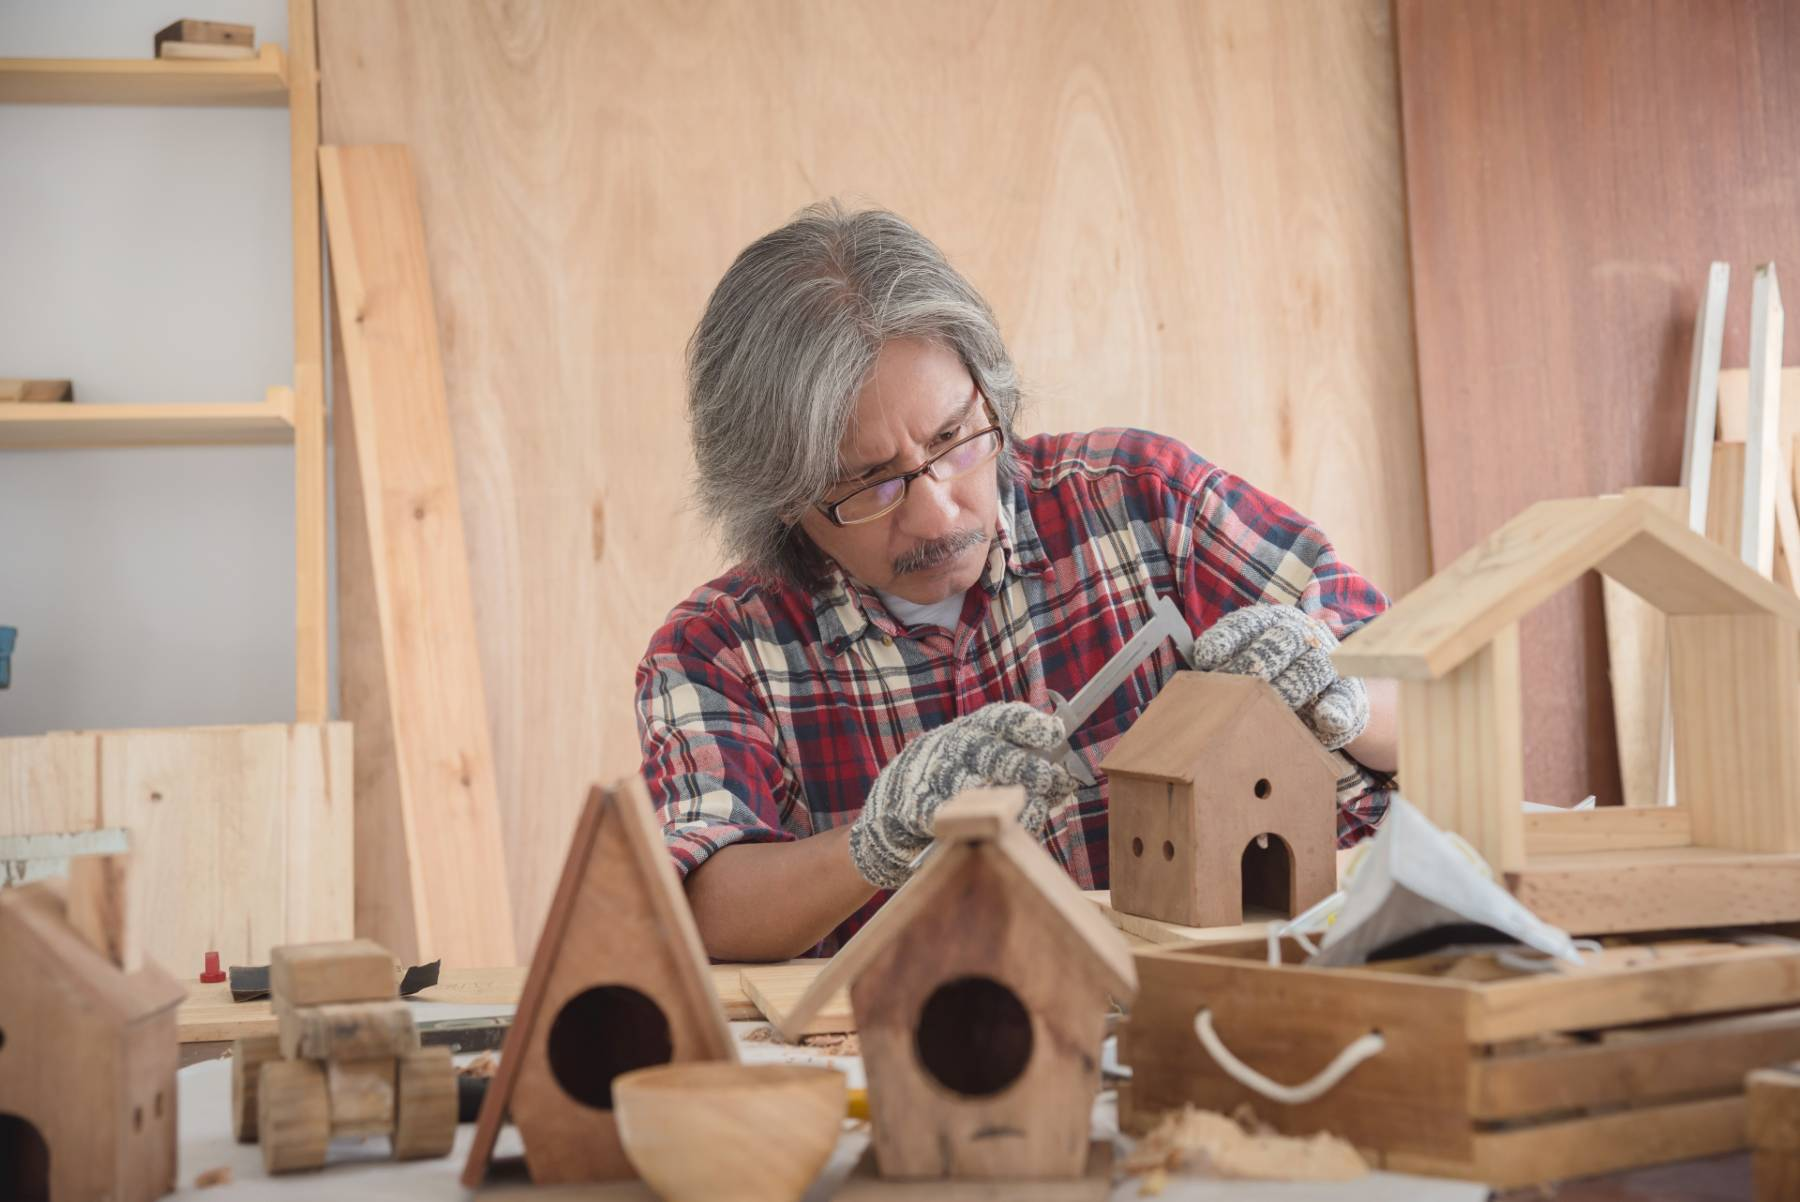 A senior man works on Christmas woodworking projects